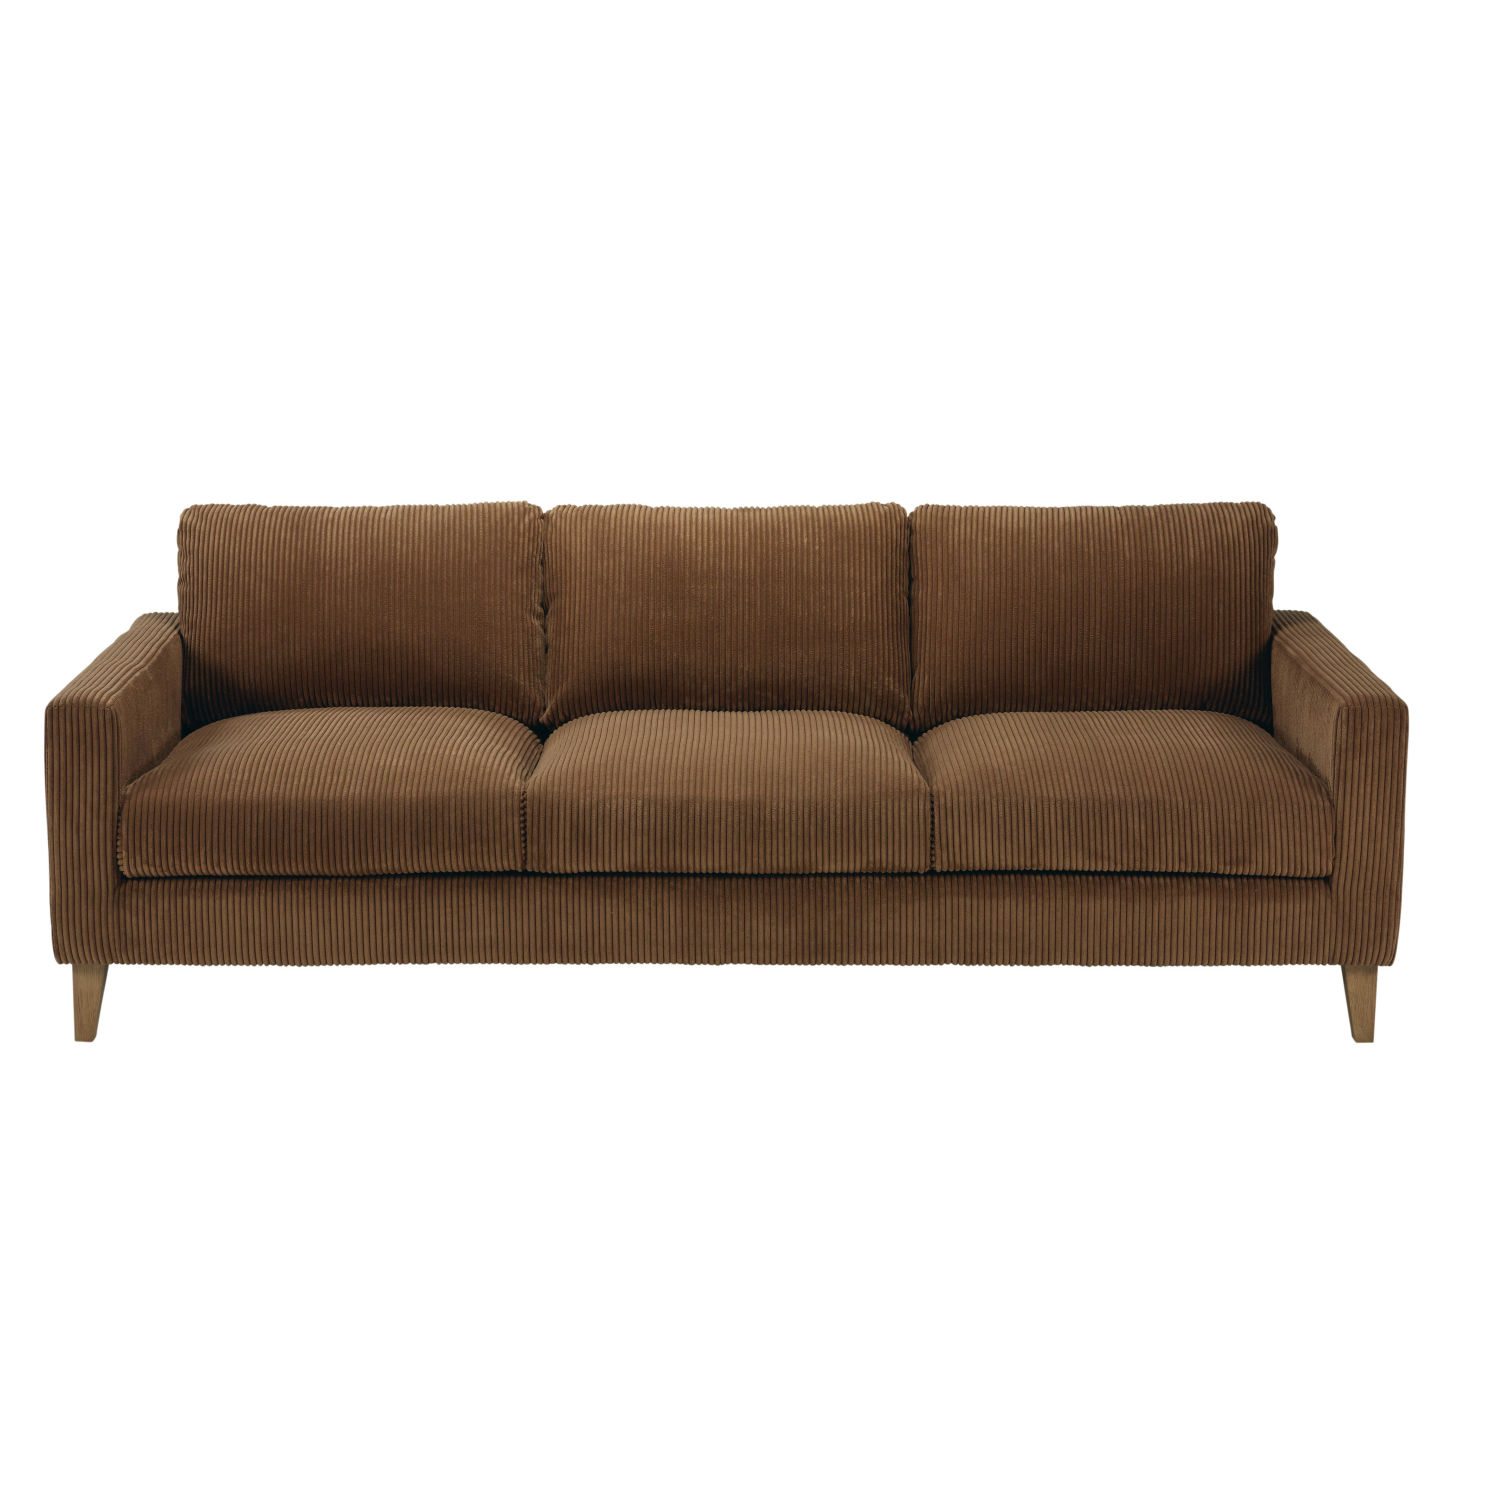 Broyhill Brown Corduroy Sofa Brown Corduroy Couches